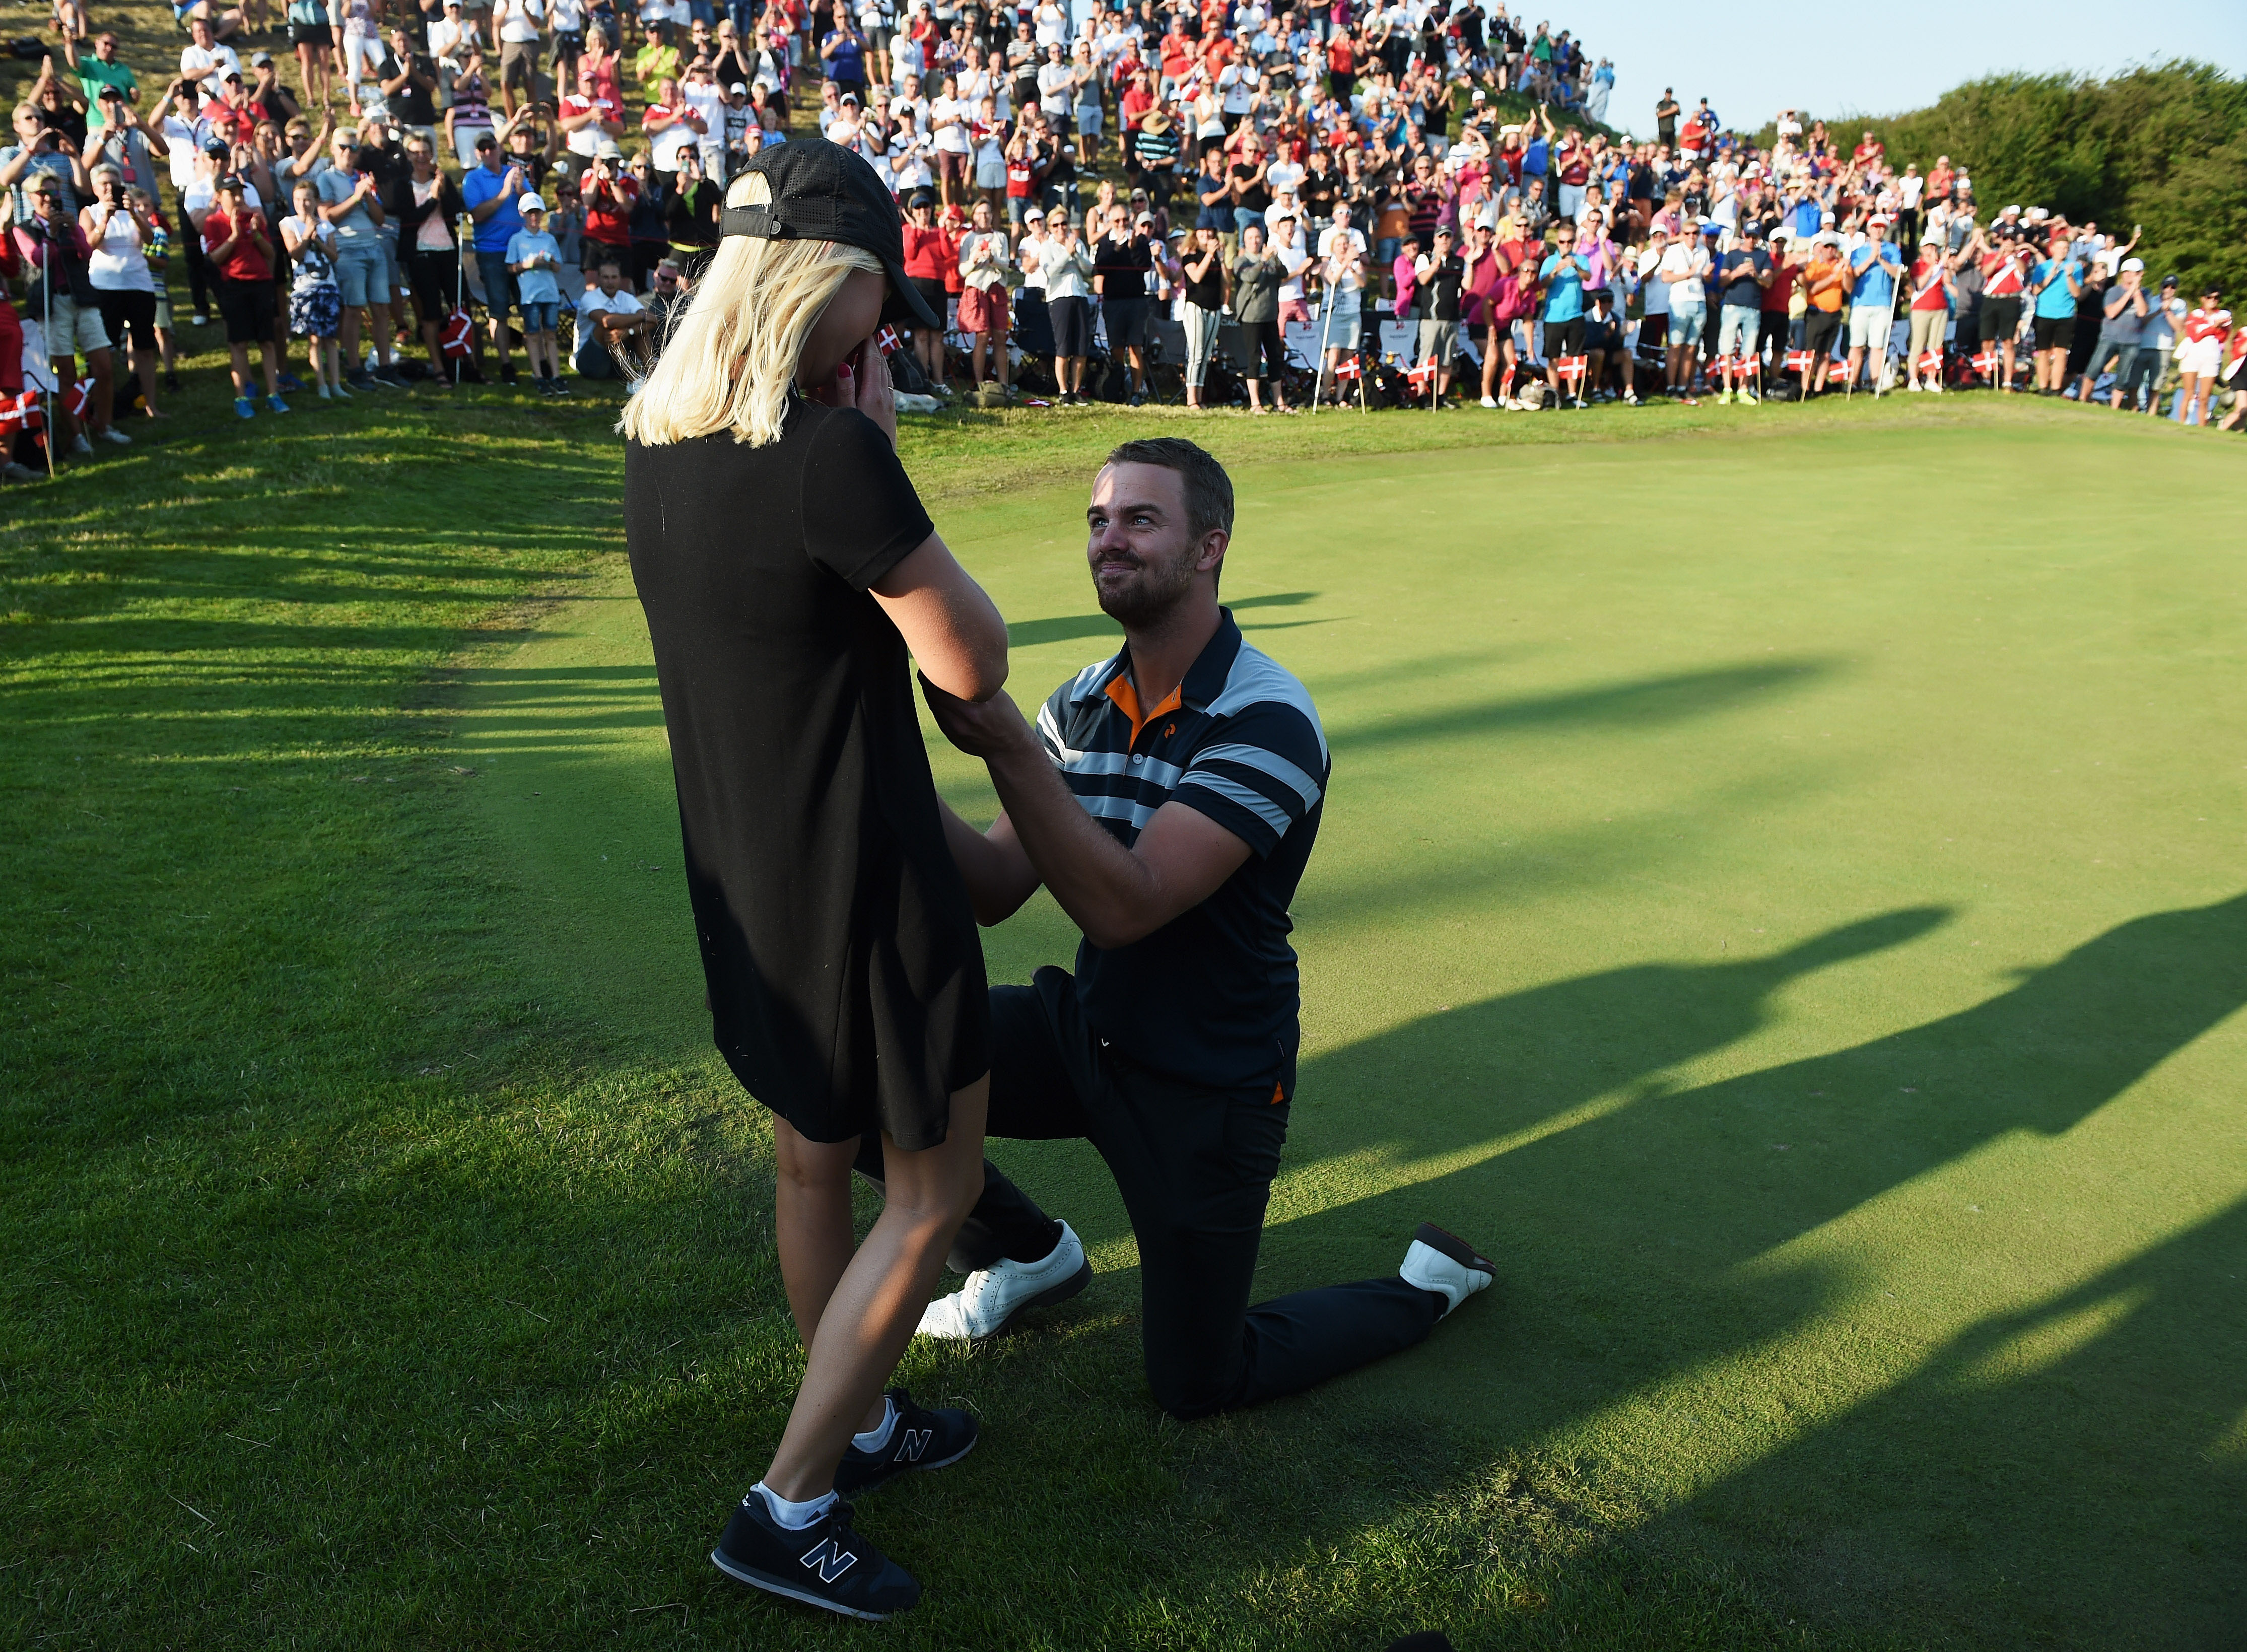 Proposal in Euro Tour event